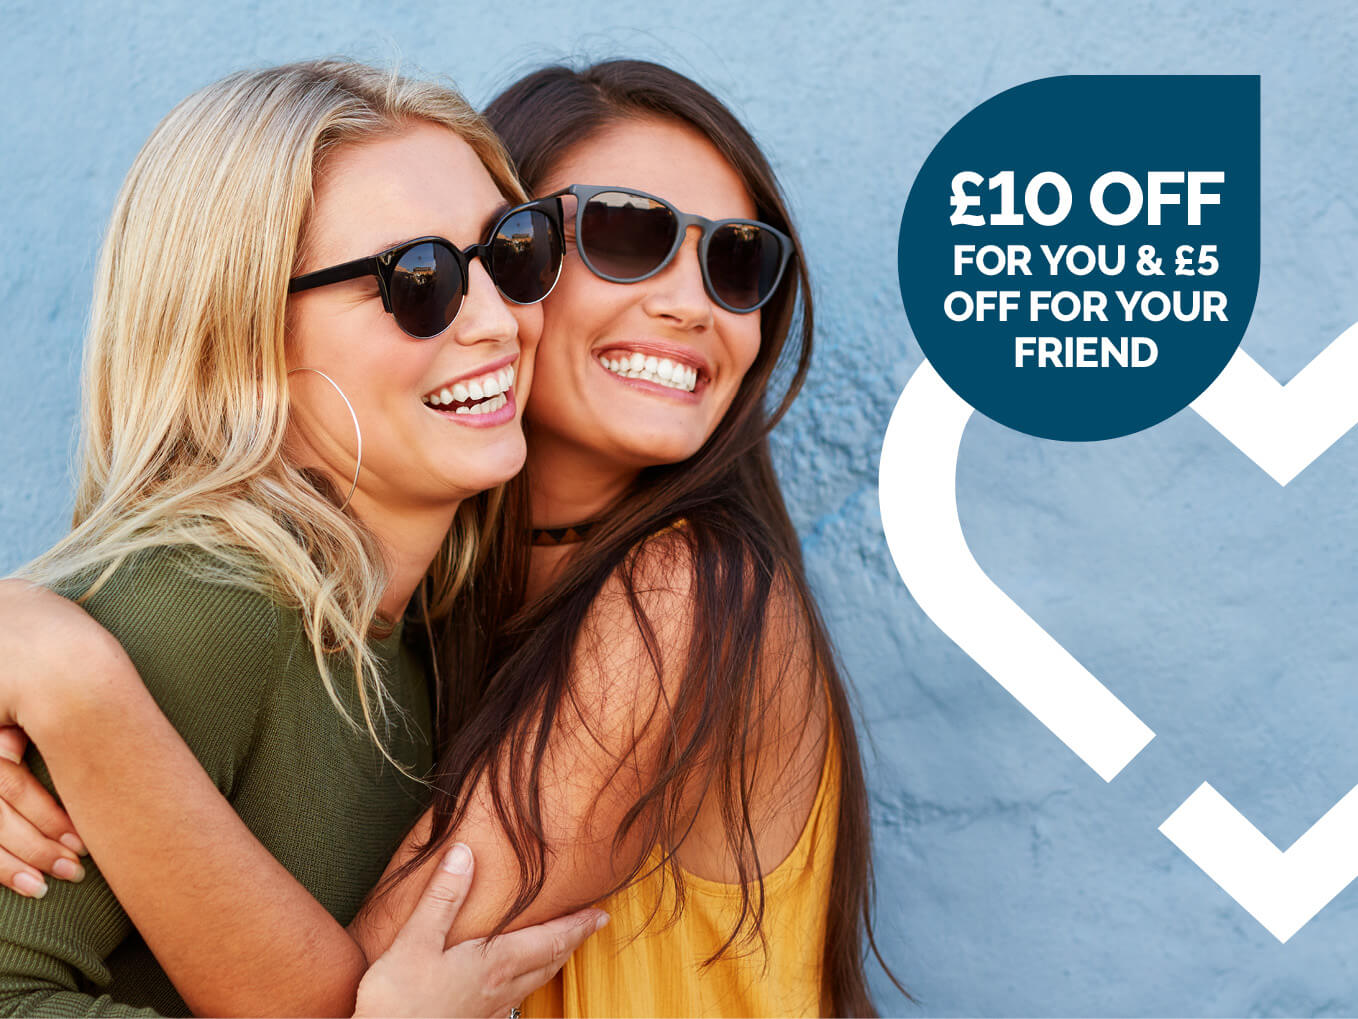 £10 off for you and £5 off for your friend promotional offer